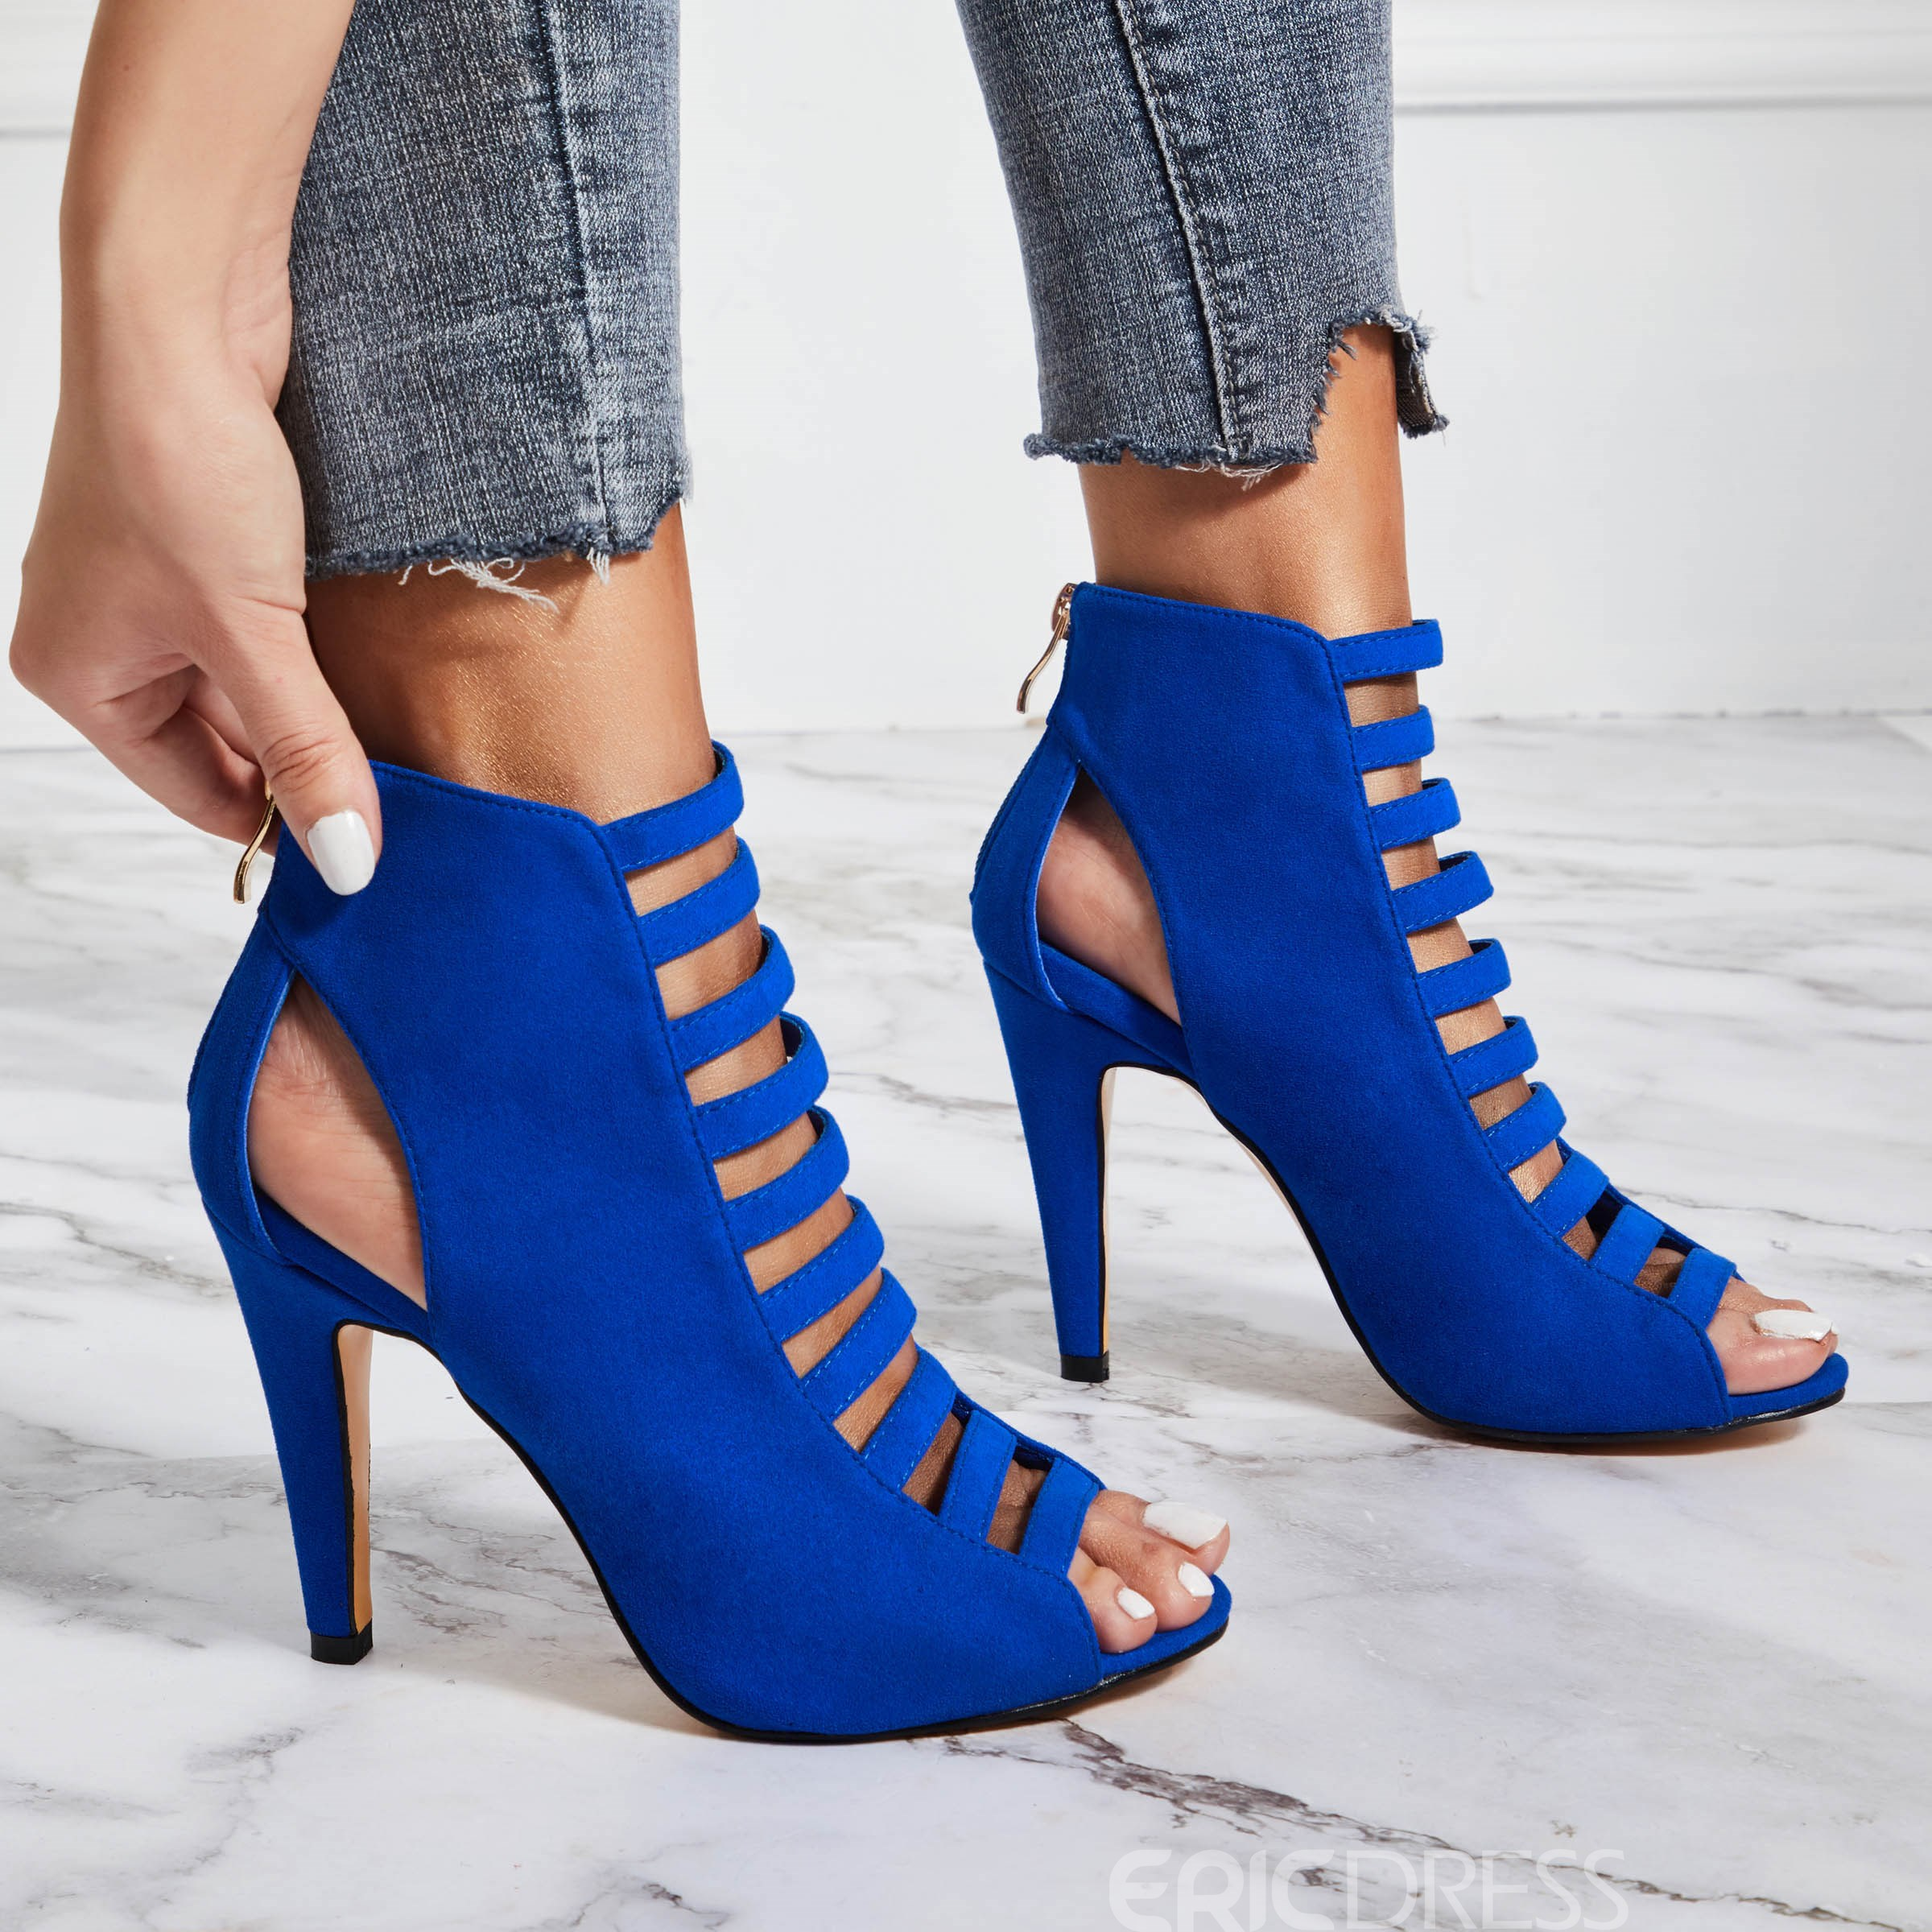 Ericdress Blue Peep Toe Bakc Zip Stilettos Sandals